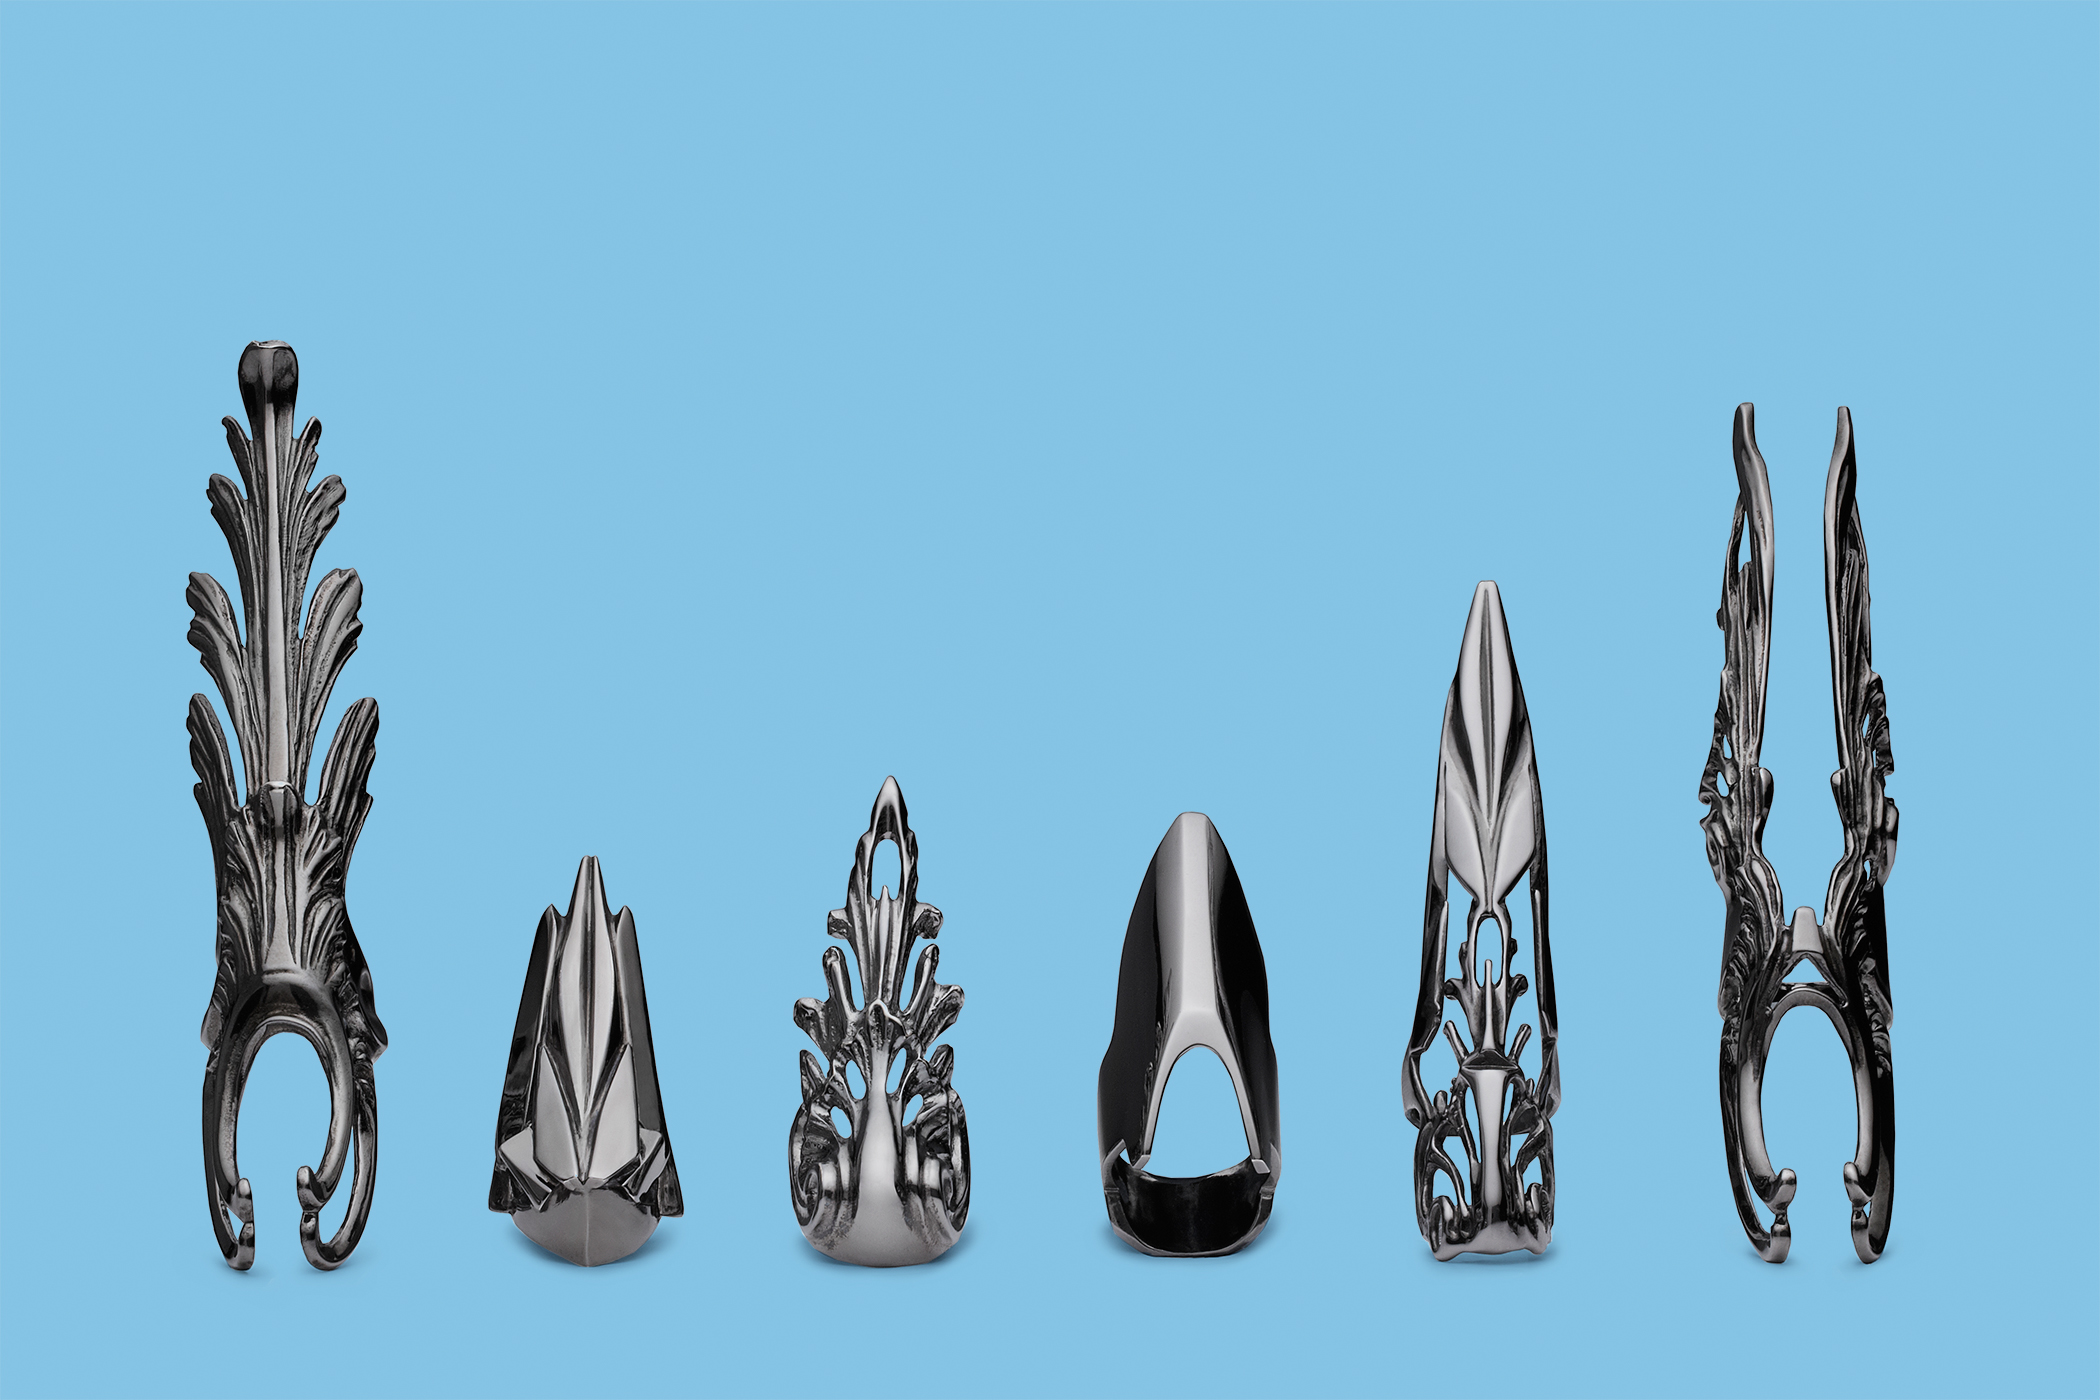 170712-game-of-thrones-jewelry-rings